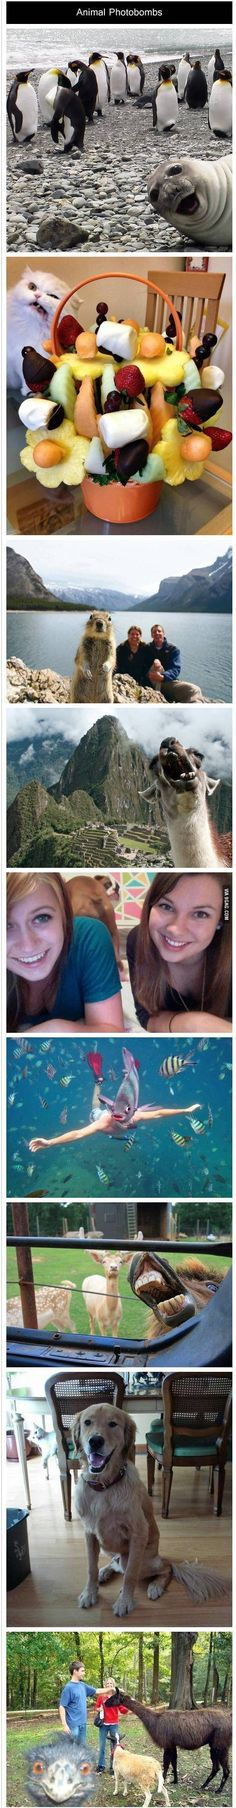 Animal photobombs.